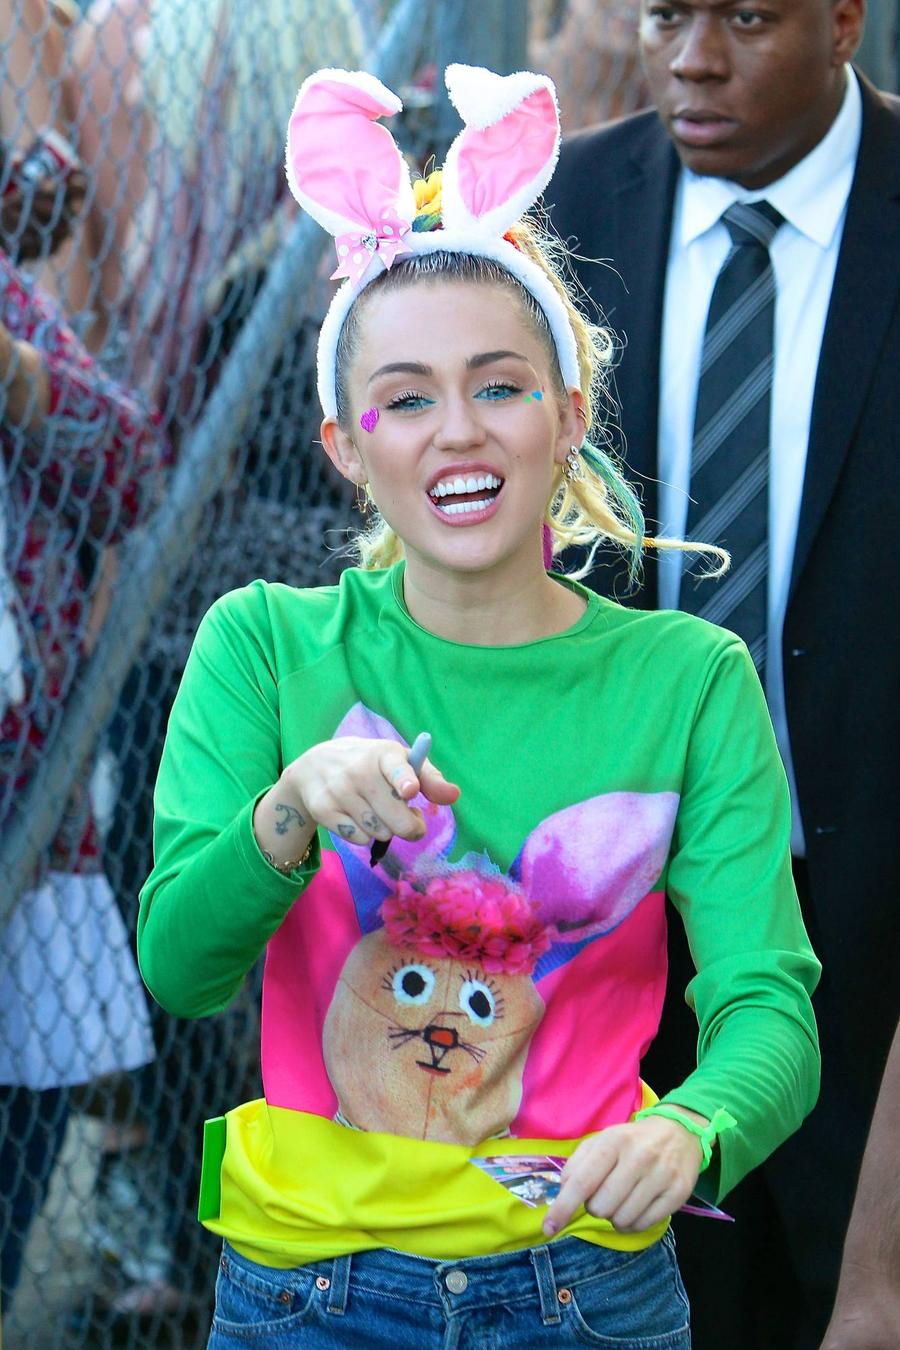 Miley Cyrus Reunites With Ex's Dad Arnold Schwarzenegger